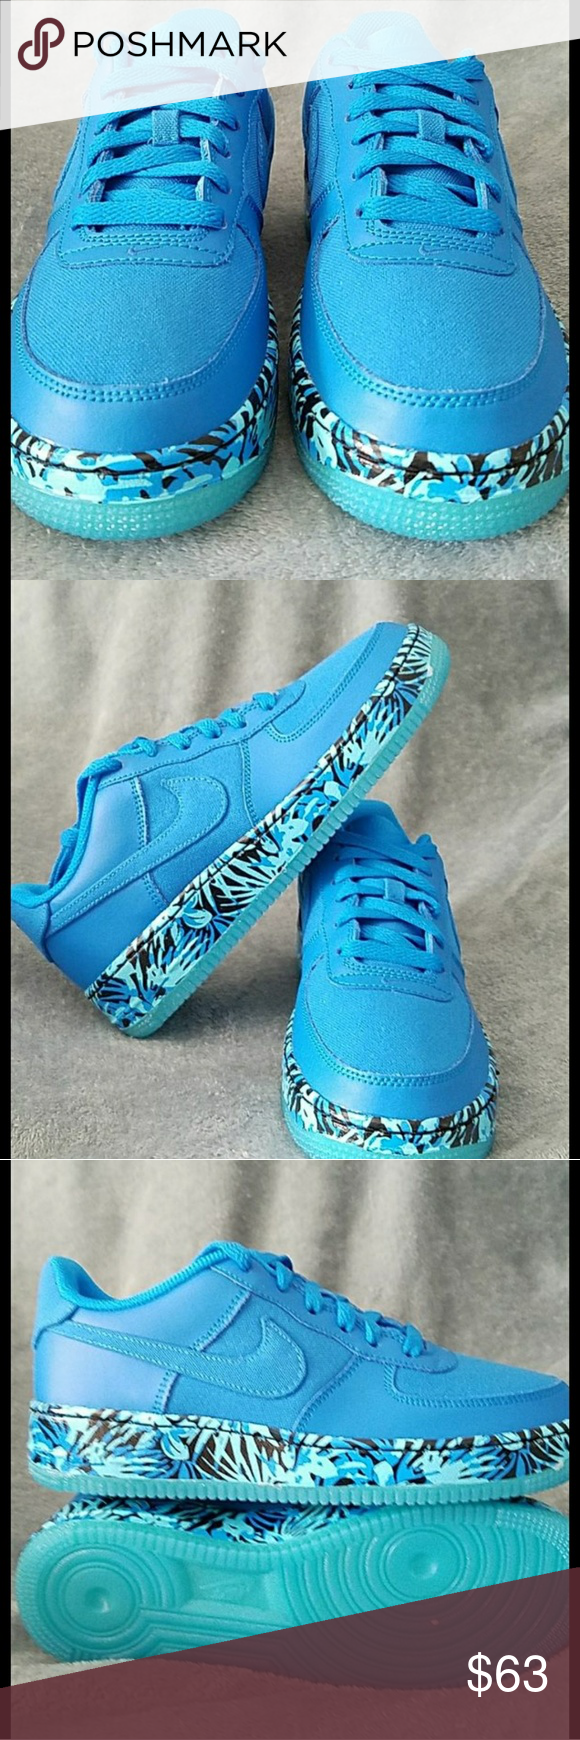 AIR FORCE 1 PREM GS size 6 youth   Nike